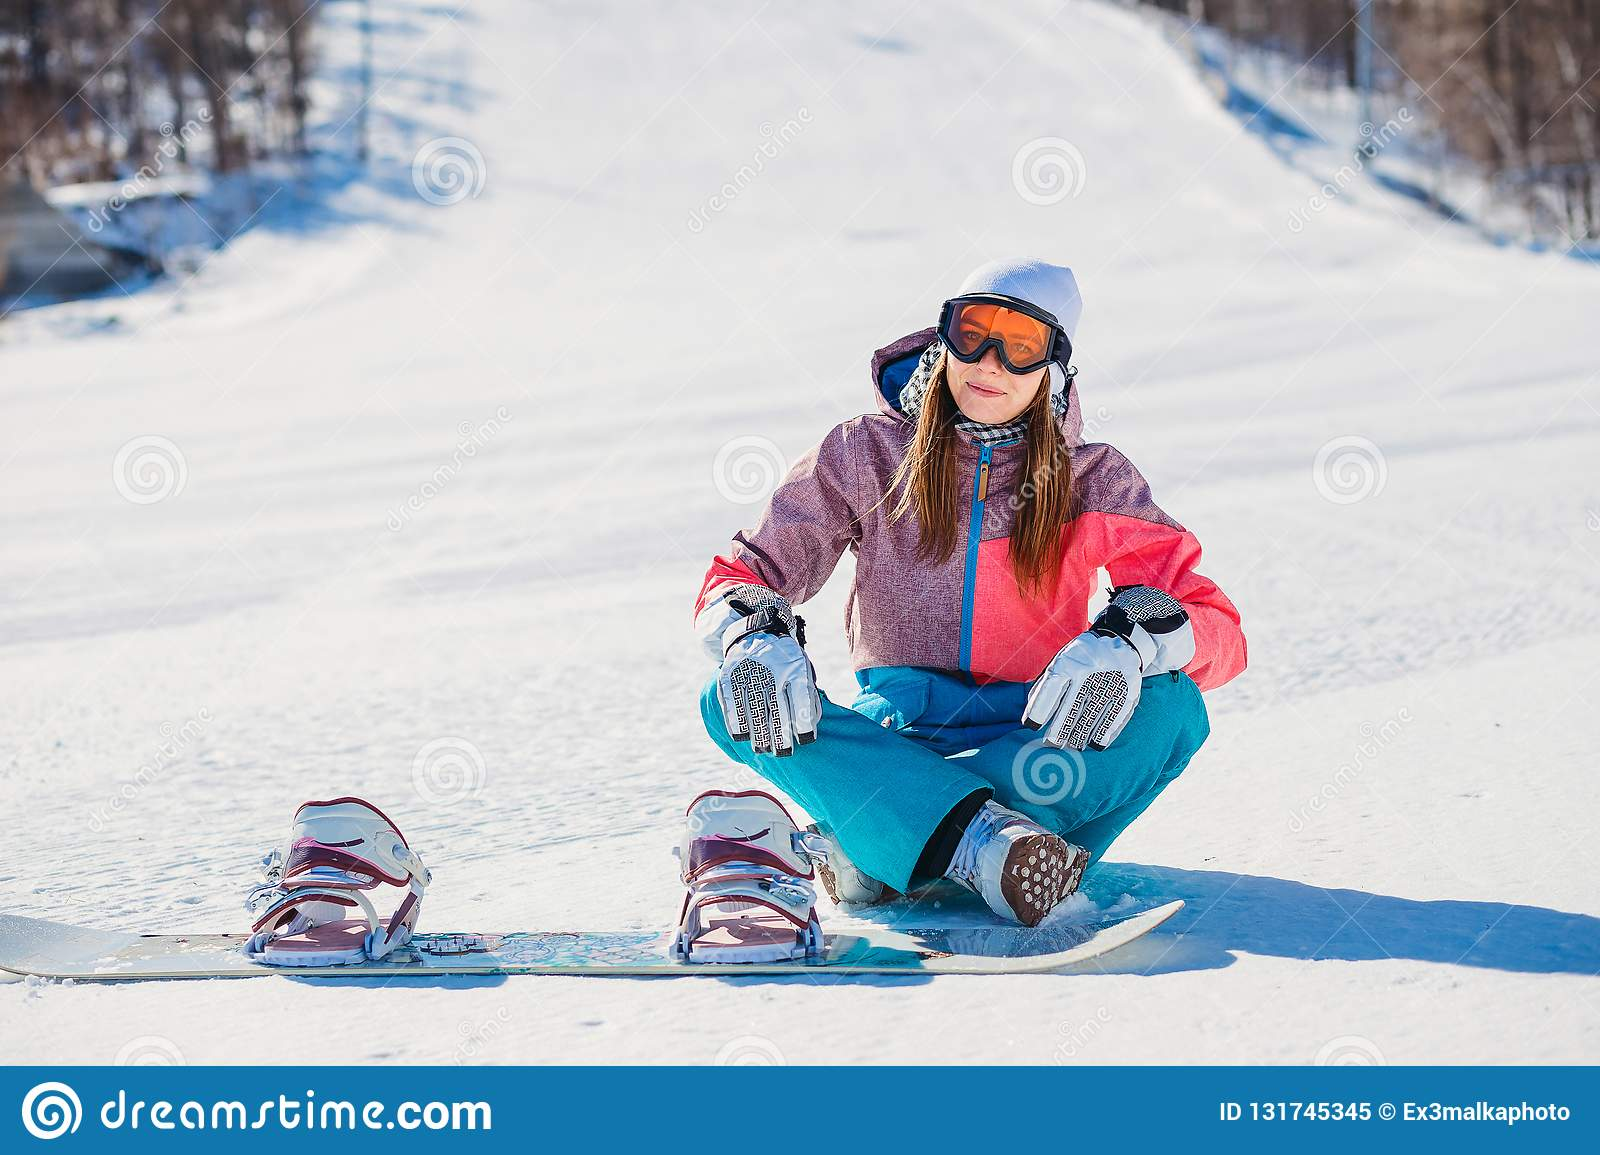 5c9e187a06 A Beautiful Woman In Clothing For Snowboarding Sitting On The Track ...